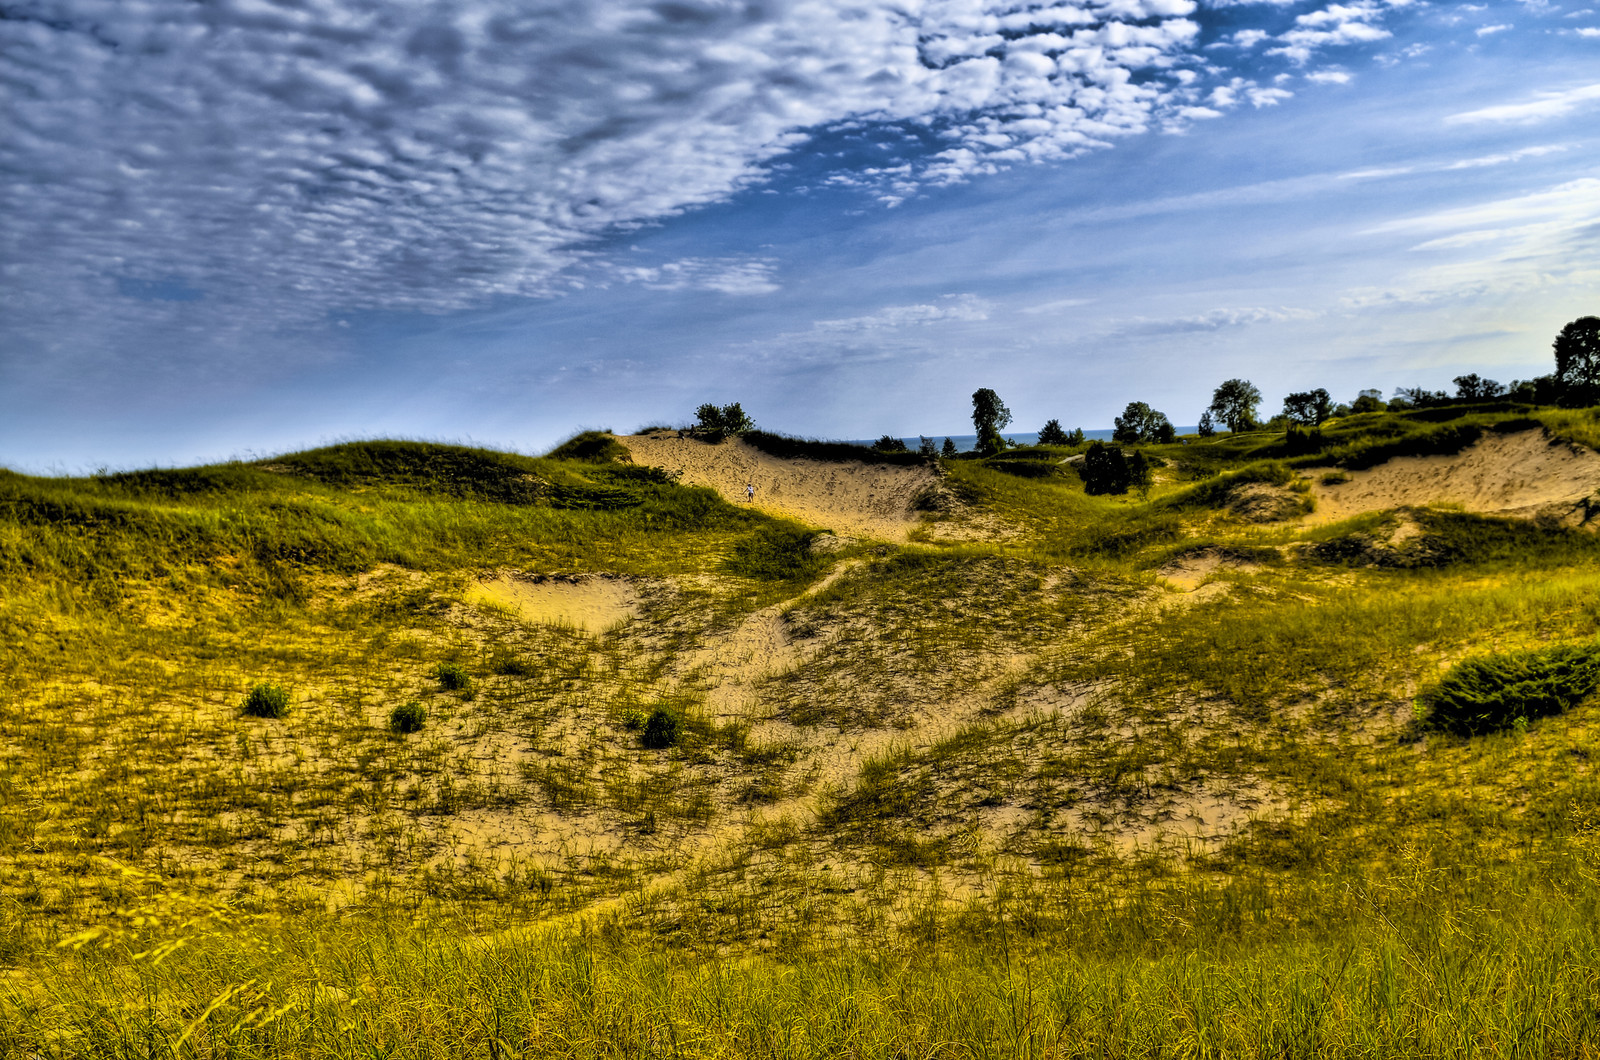 Sand dunes with blue skie overhead - photo from the juniper nature trail in kohler andrae state park - in Sheboygan Wisconsin